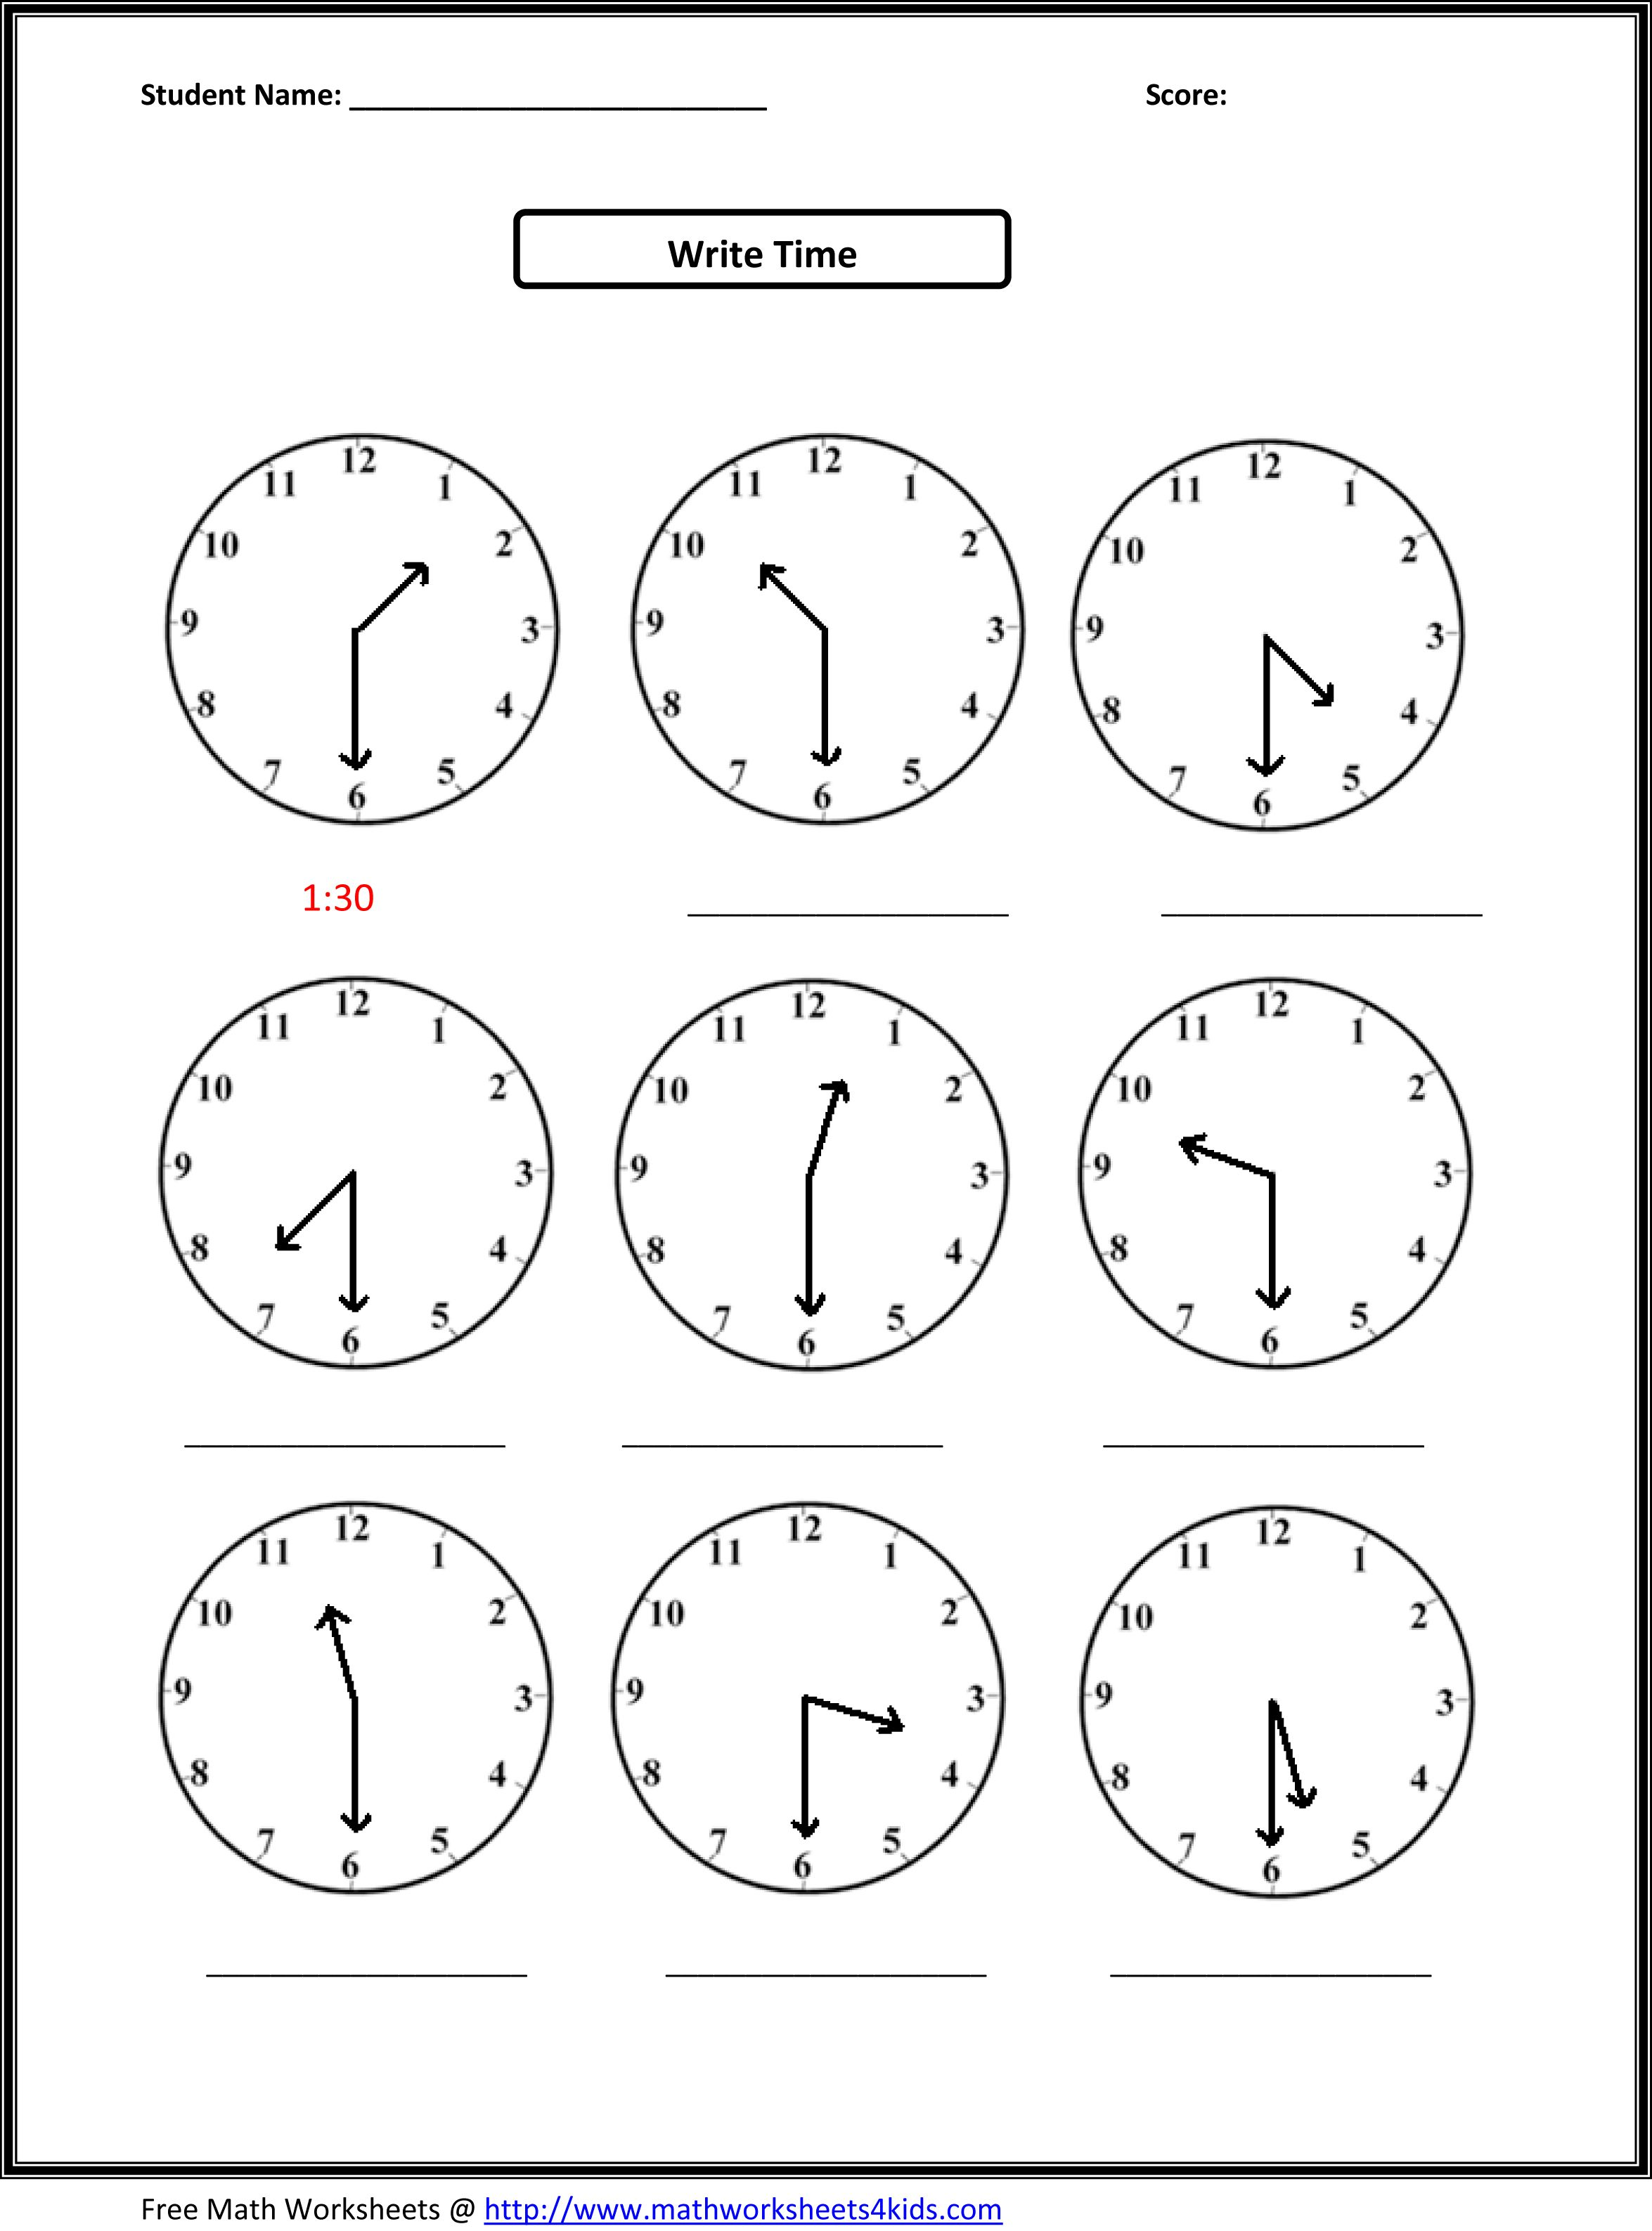 Proatmealus  Splendid Worksheet On Time For Grade   Reocurent With Entrancing Free Printable Telling Time Worksheets Nd Grade  Reocurent With Agreeable Slide Flip Turn Worksheet Also Science Free Worksheets In Addition Division With Decimals Worksheets Printable And Make Inferences Worksheet As Well As Picture Graph Worksheets For First Grade Additionally Th Grade Inferencing Worksheets From Reocurentcom With Proatmealus  Entrancing Worksheet On Time For Grade   Reocurent With Agreeable Free Printable Telling Time Worksheets Nd Grade  Reocurent And Splendid Slide Flip Turn Worksheet Also Science Free Worksheets In Addition Division With Decimals Worksheets Printable From Reocurentcom